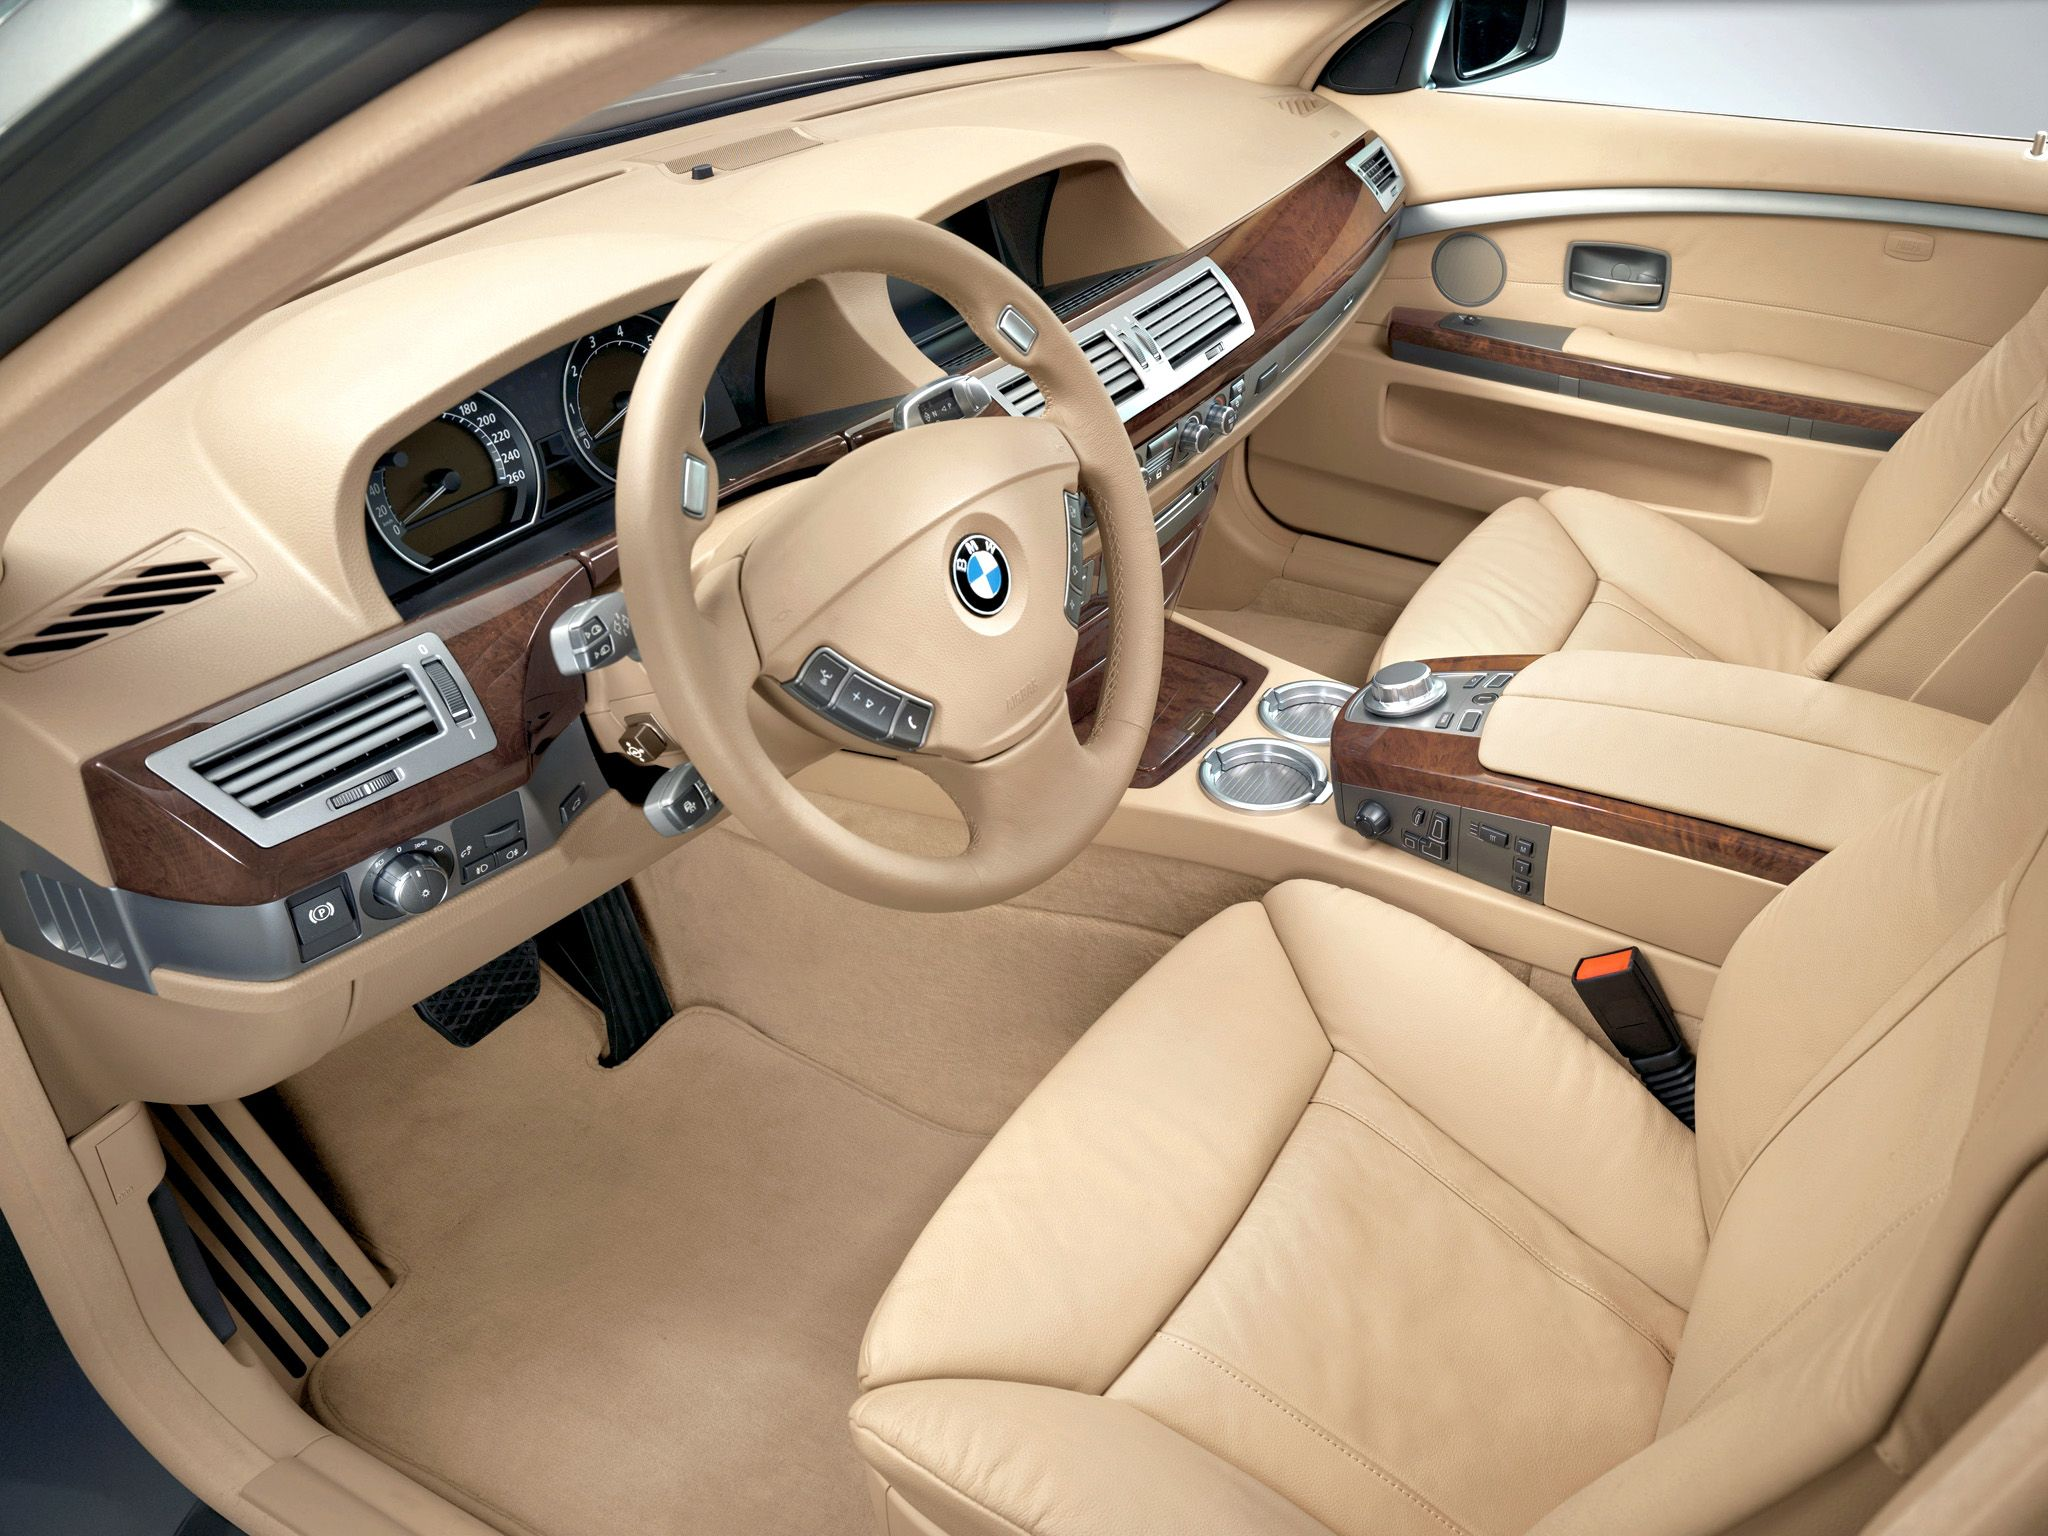 bmw 7 series e65 2001 2008 interior bmw 7 series pinterest bmw cars and dream cars. Black Bedroom Furniture Sets. Home Design Ideas